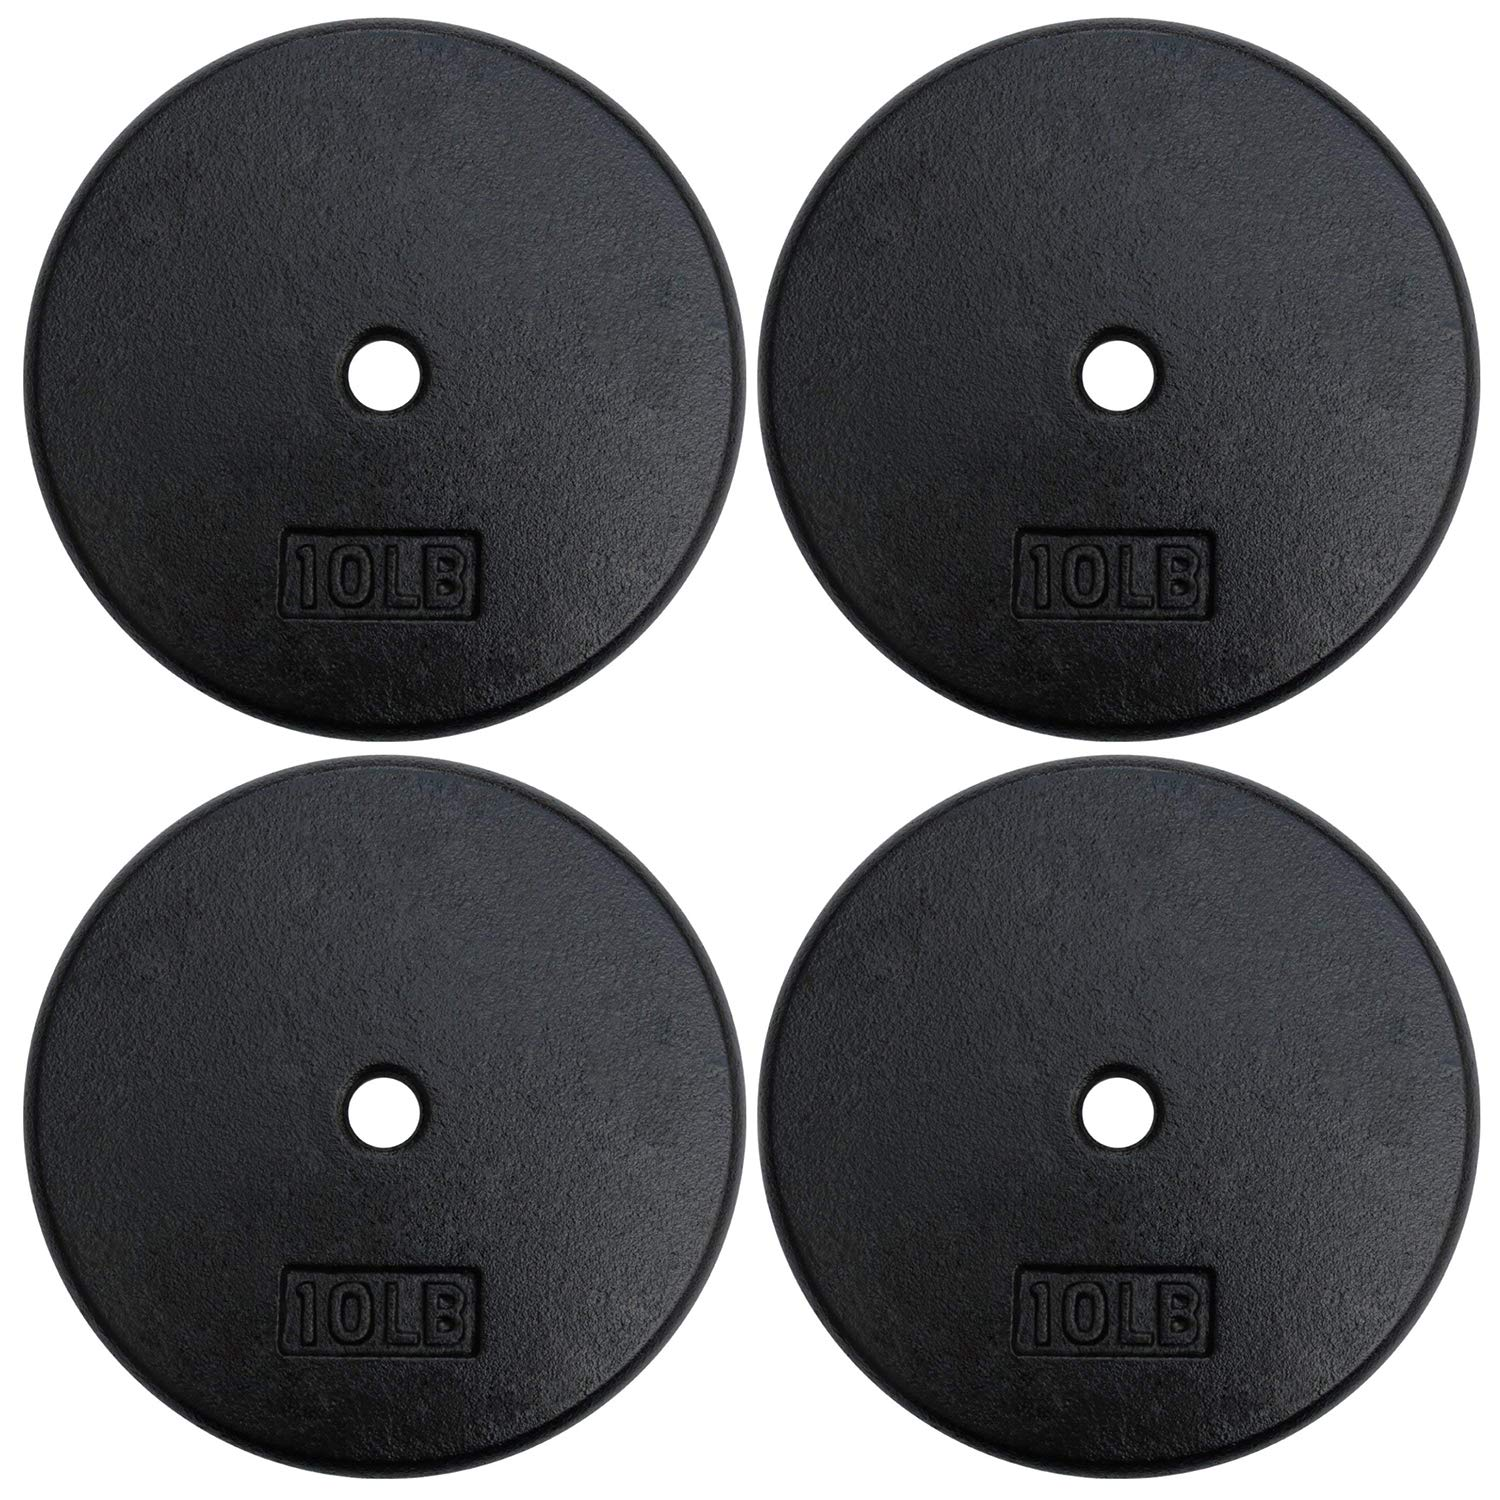 A2ZCARE Standard Cast Iron Weight Plates 1-Inch Center-Hole for Dumbbells, Standard Barbell 10, 15, 20, 25 lbs (Single and Pair) (10 lbs - Set of 4)